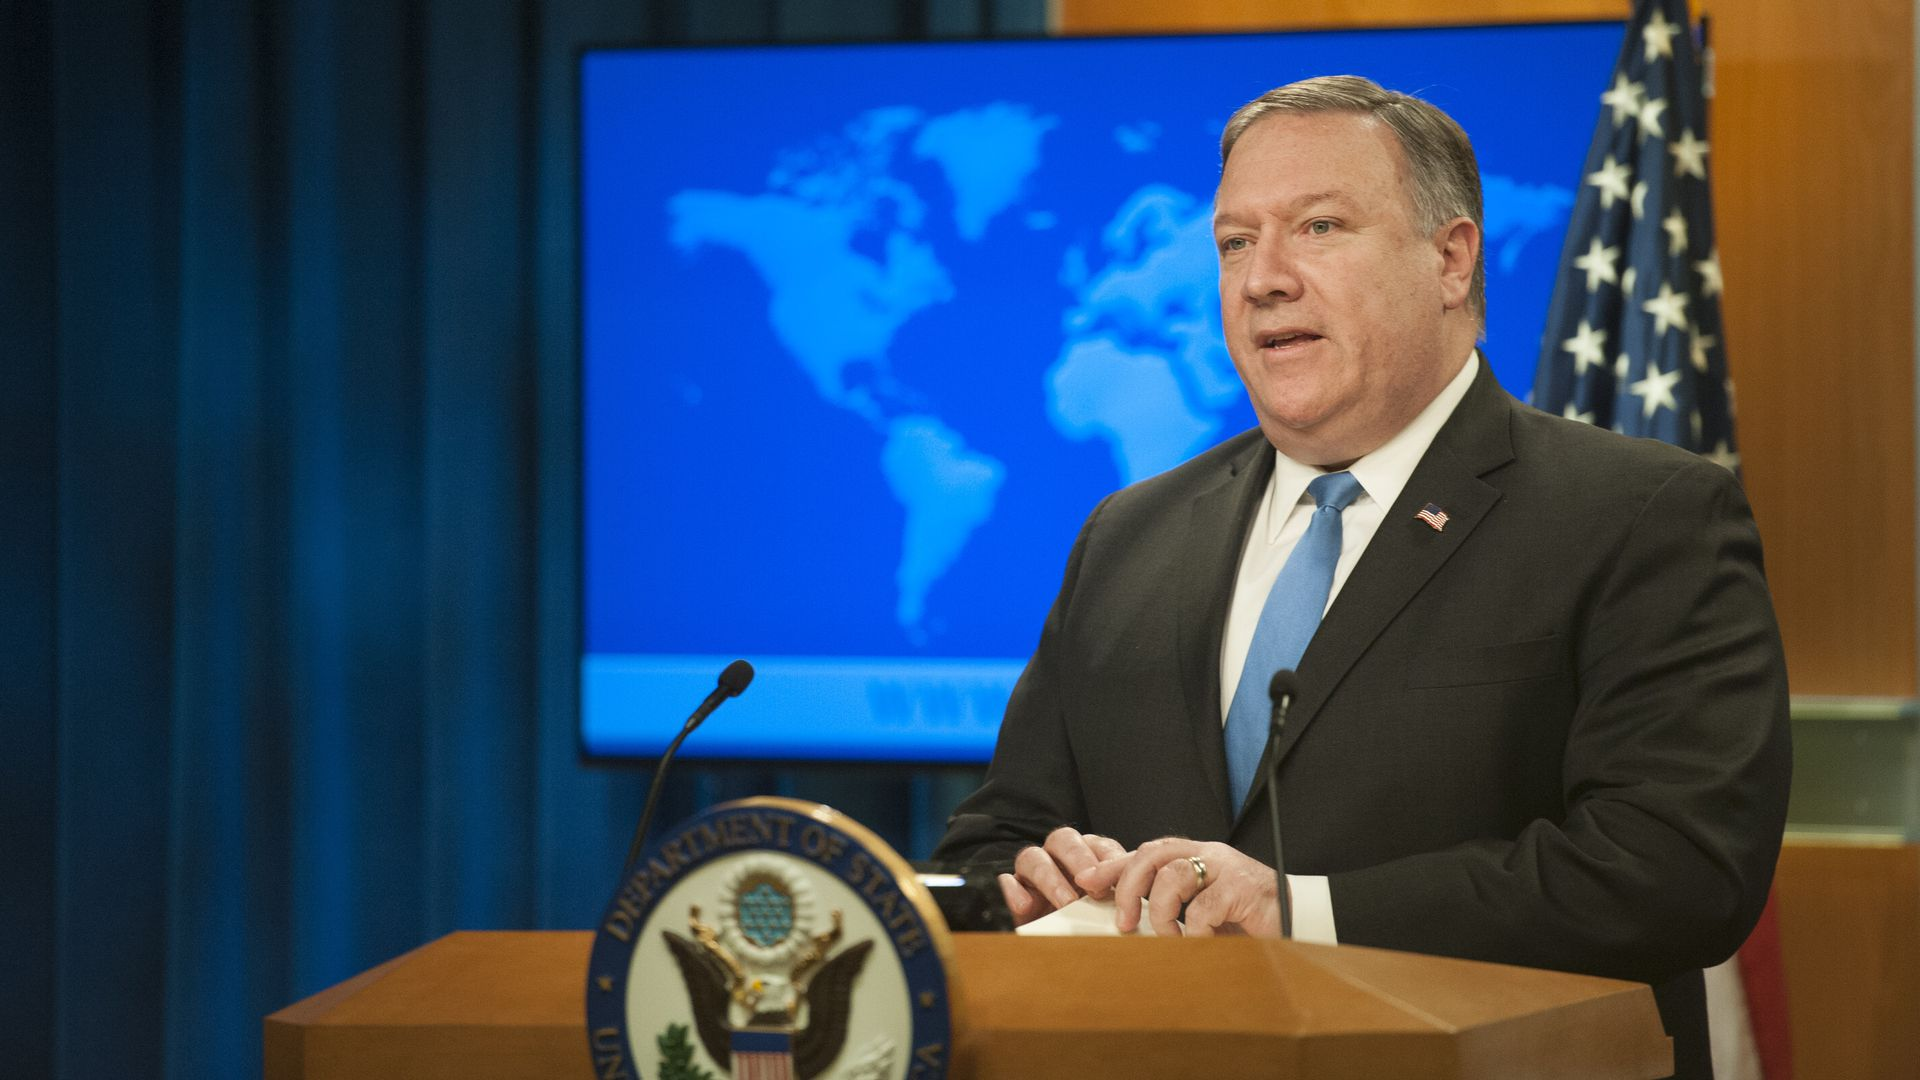 Secretary of State Mike Pompeo at a podium